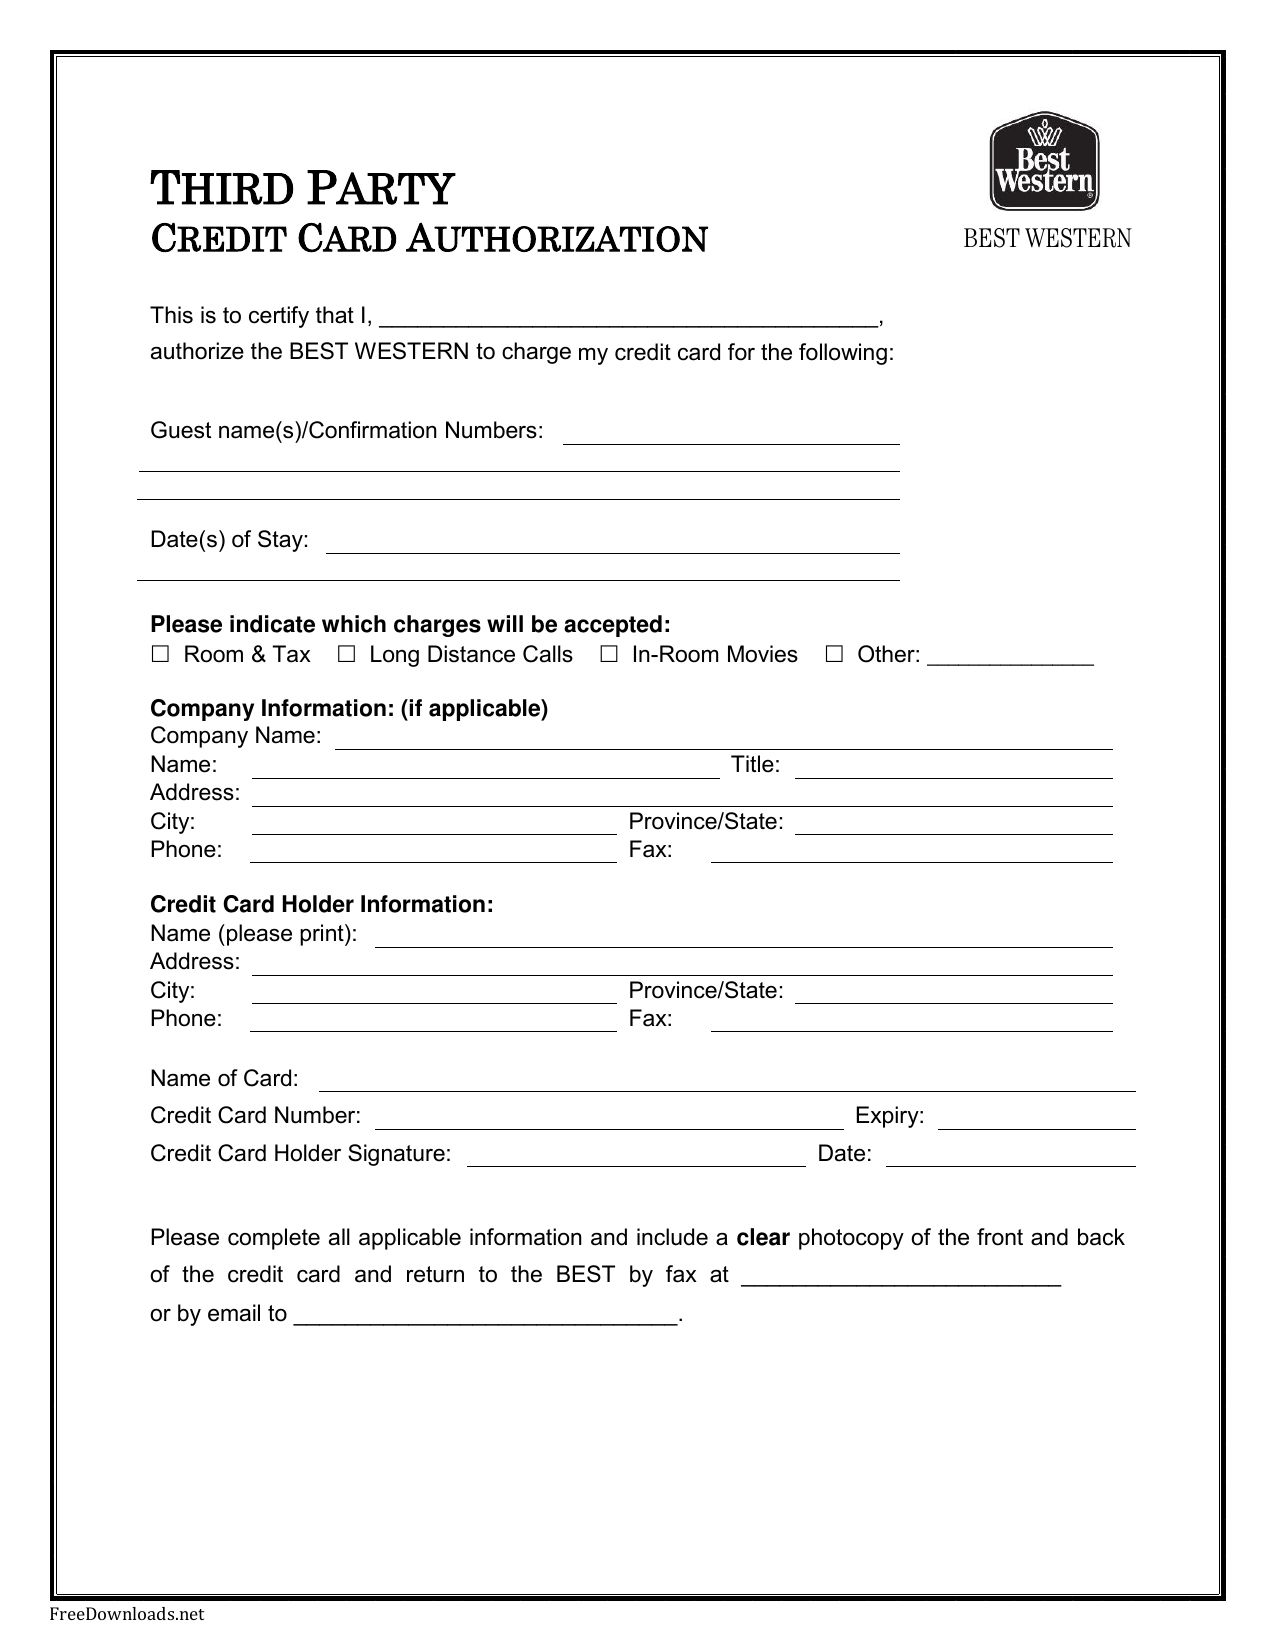 Credit Card Authorization Forms Cnbam With Authorization To